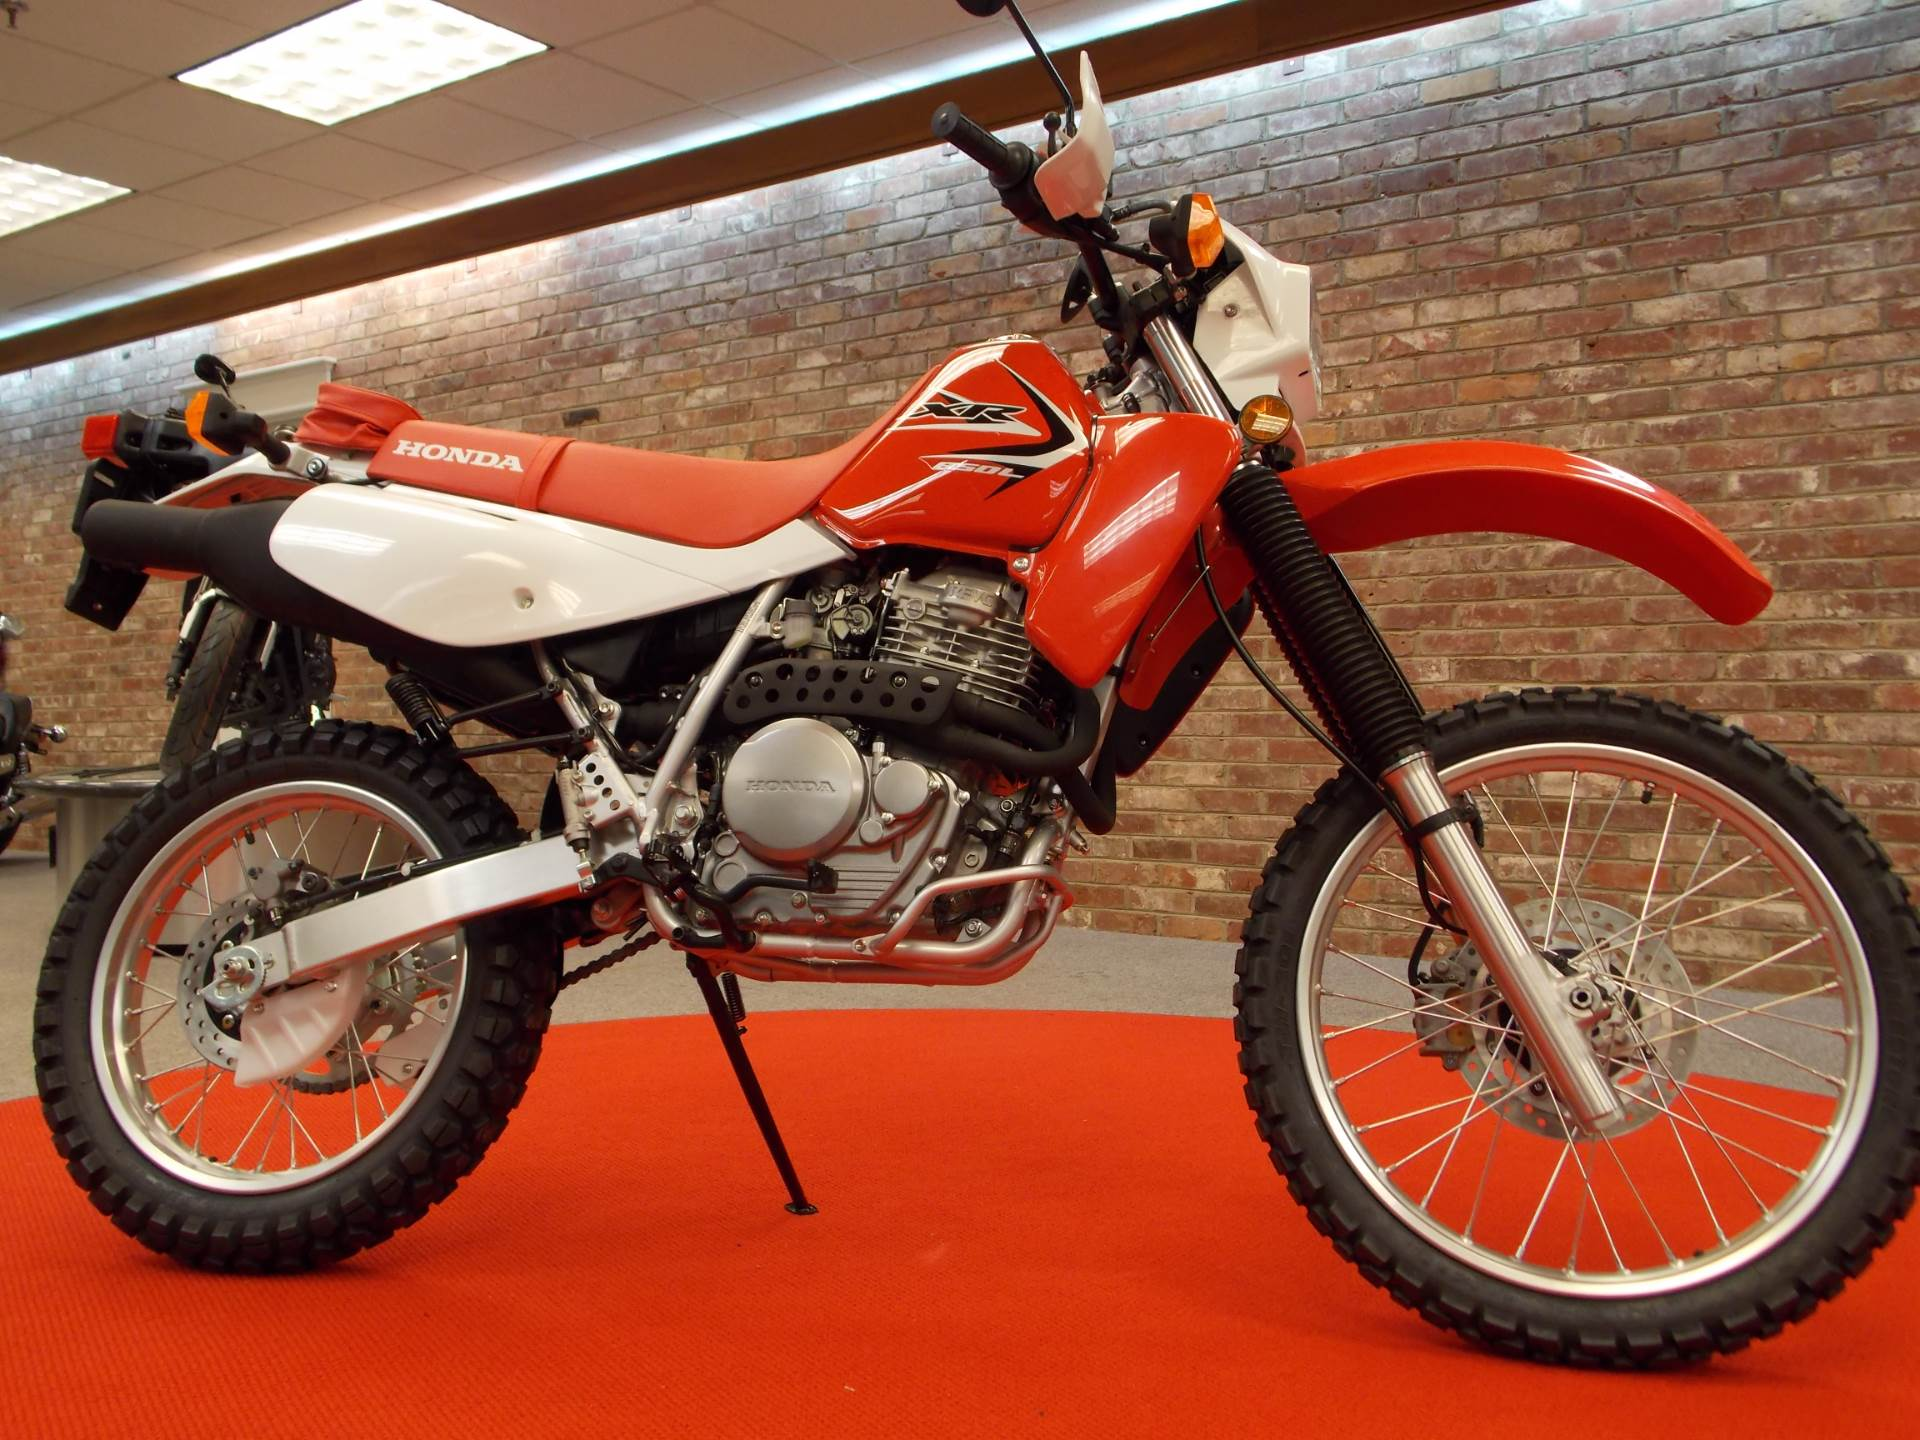 new 2017 honda xr650l motorcycles in statesville, nc | stock